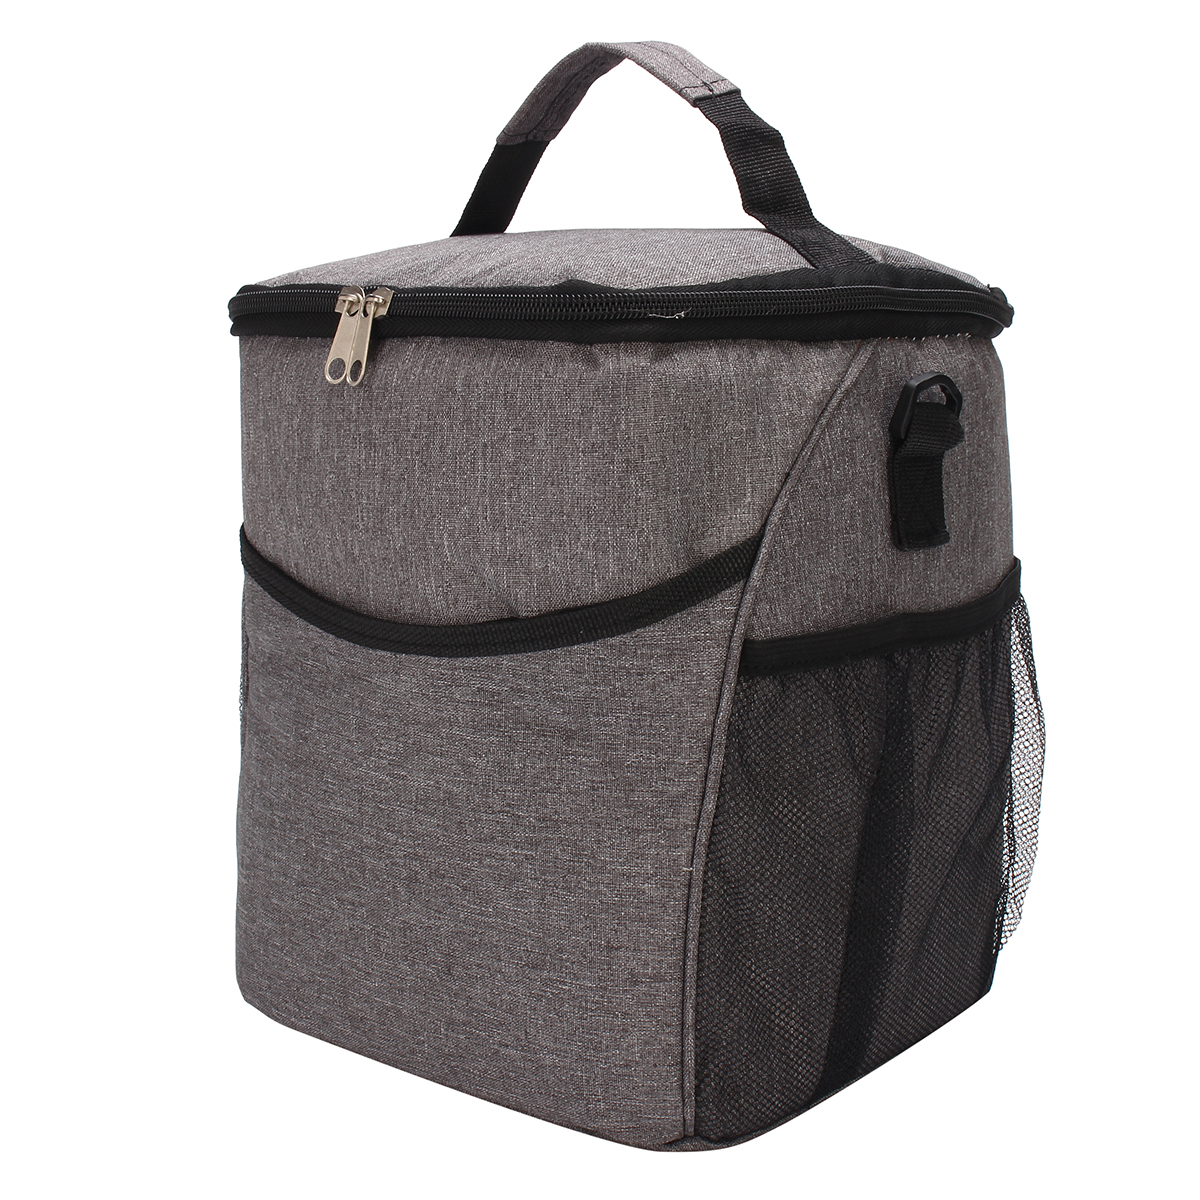 Tote Hot Cold Insulated Thermal Cooler Travel Work Picnic School Lunch Box Bag Travel Supplies